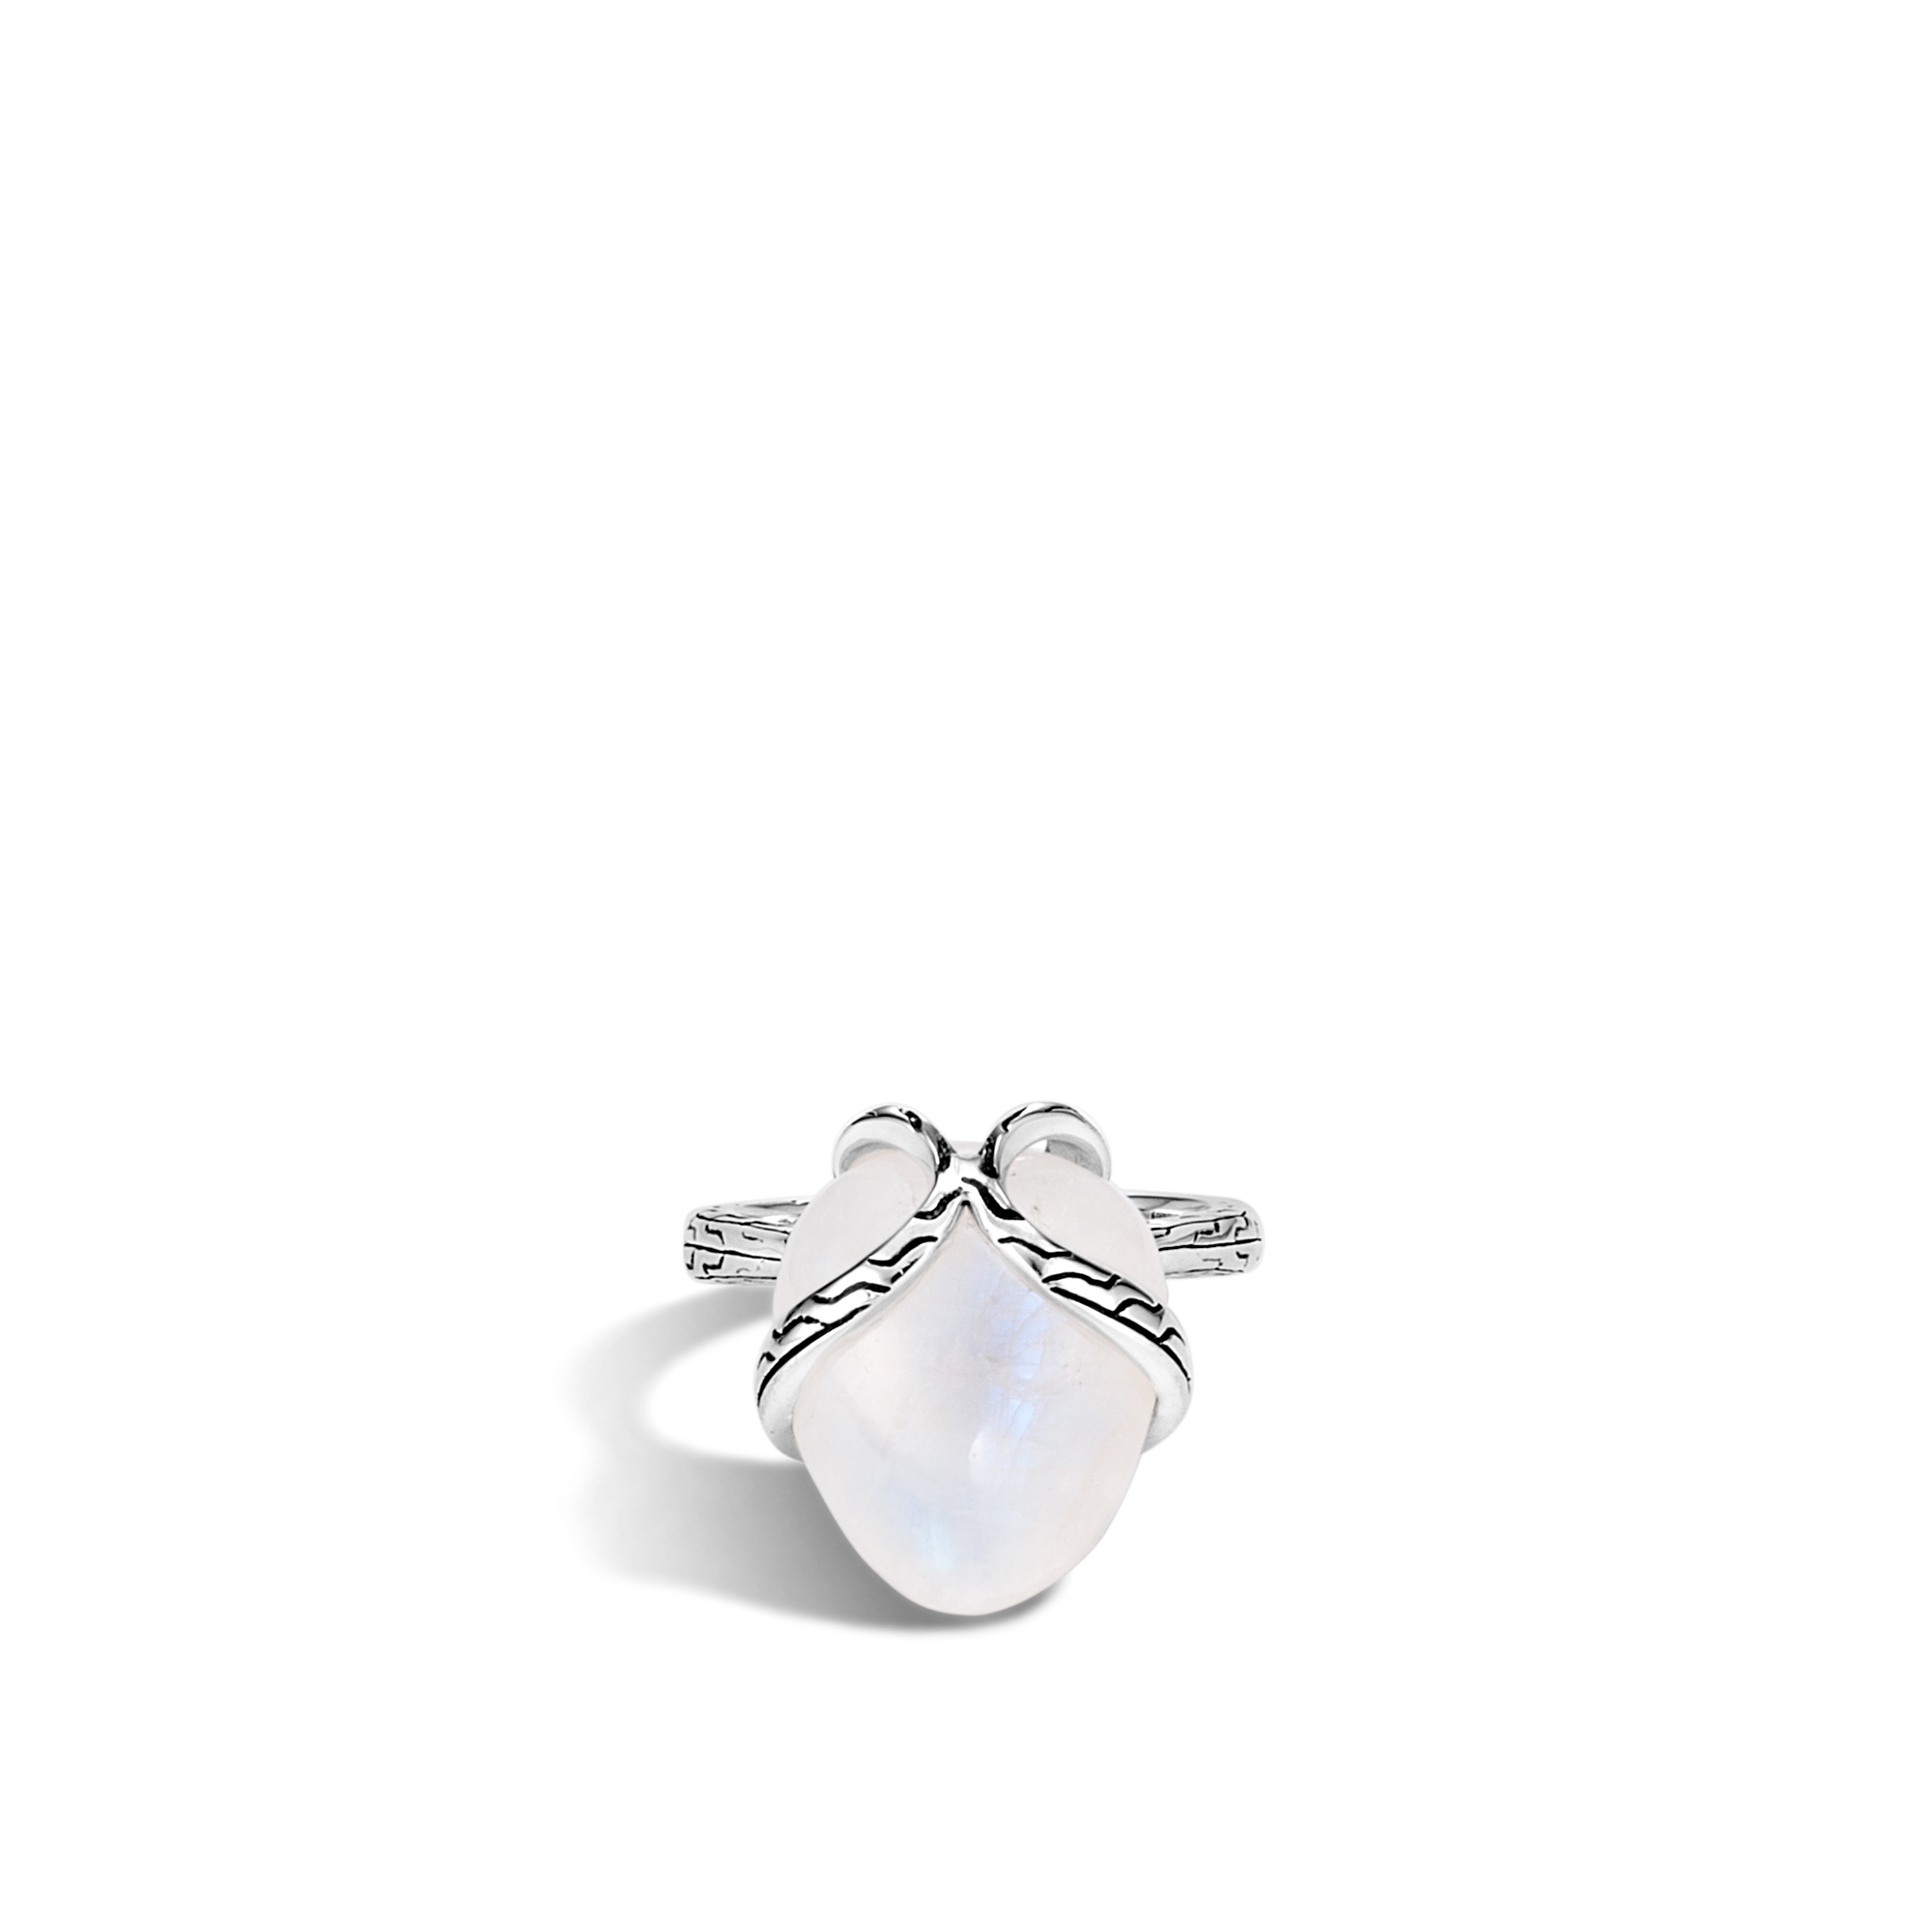 Classic Chain Ring in Silver with 14MM Gemstone, Milky Rainbow Moonstone, large